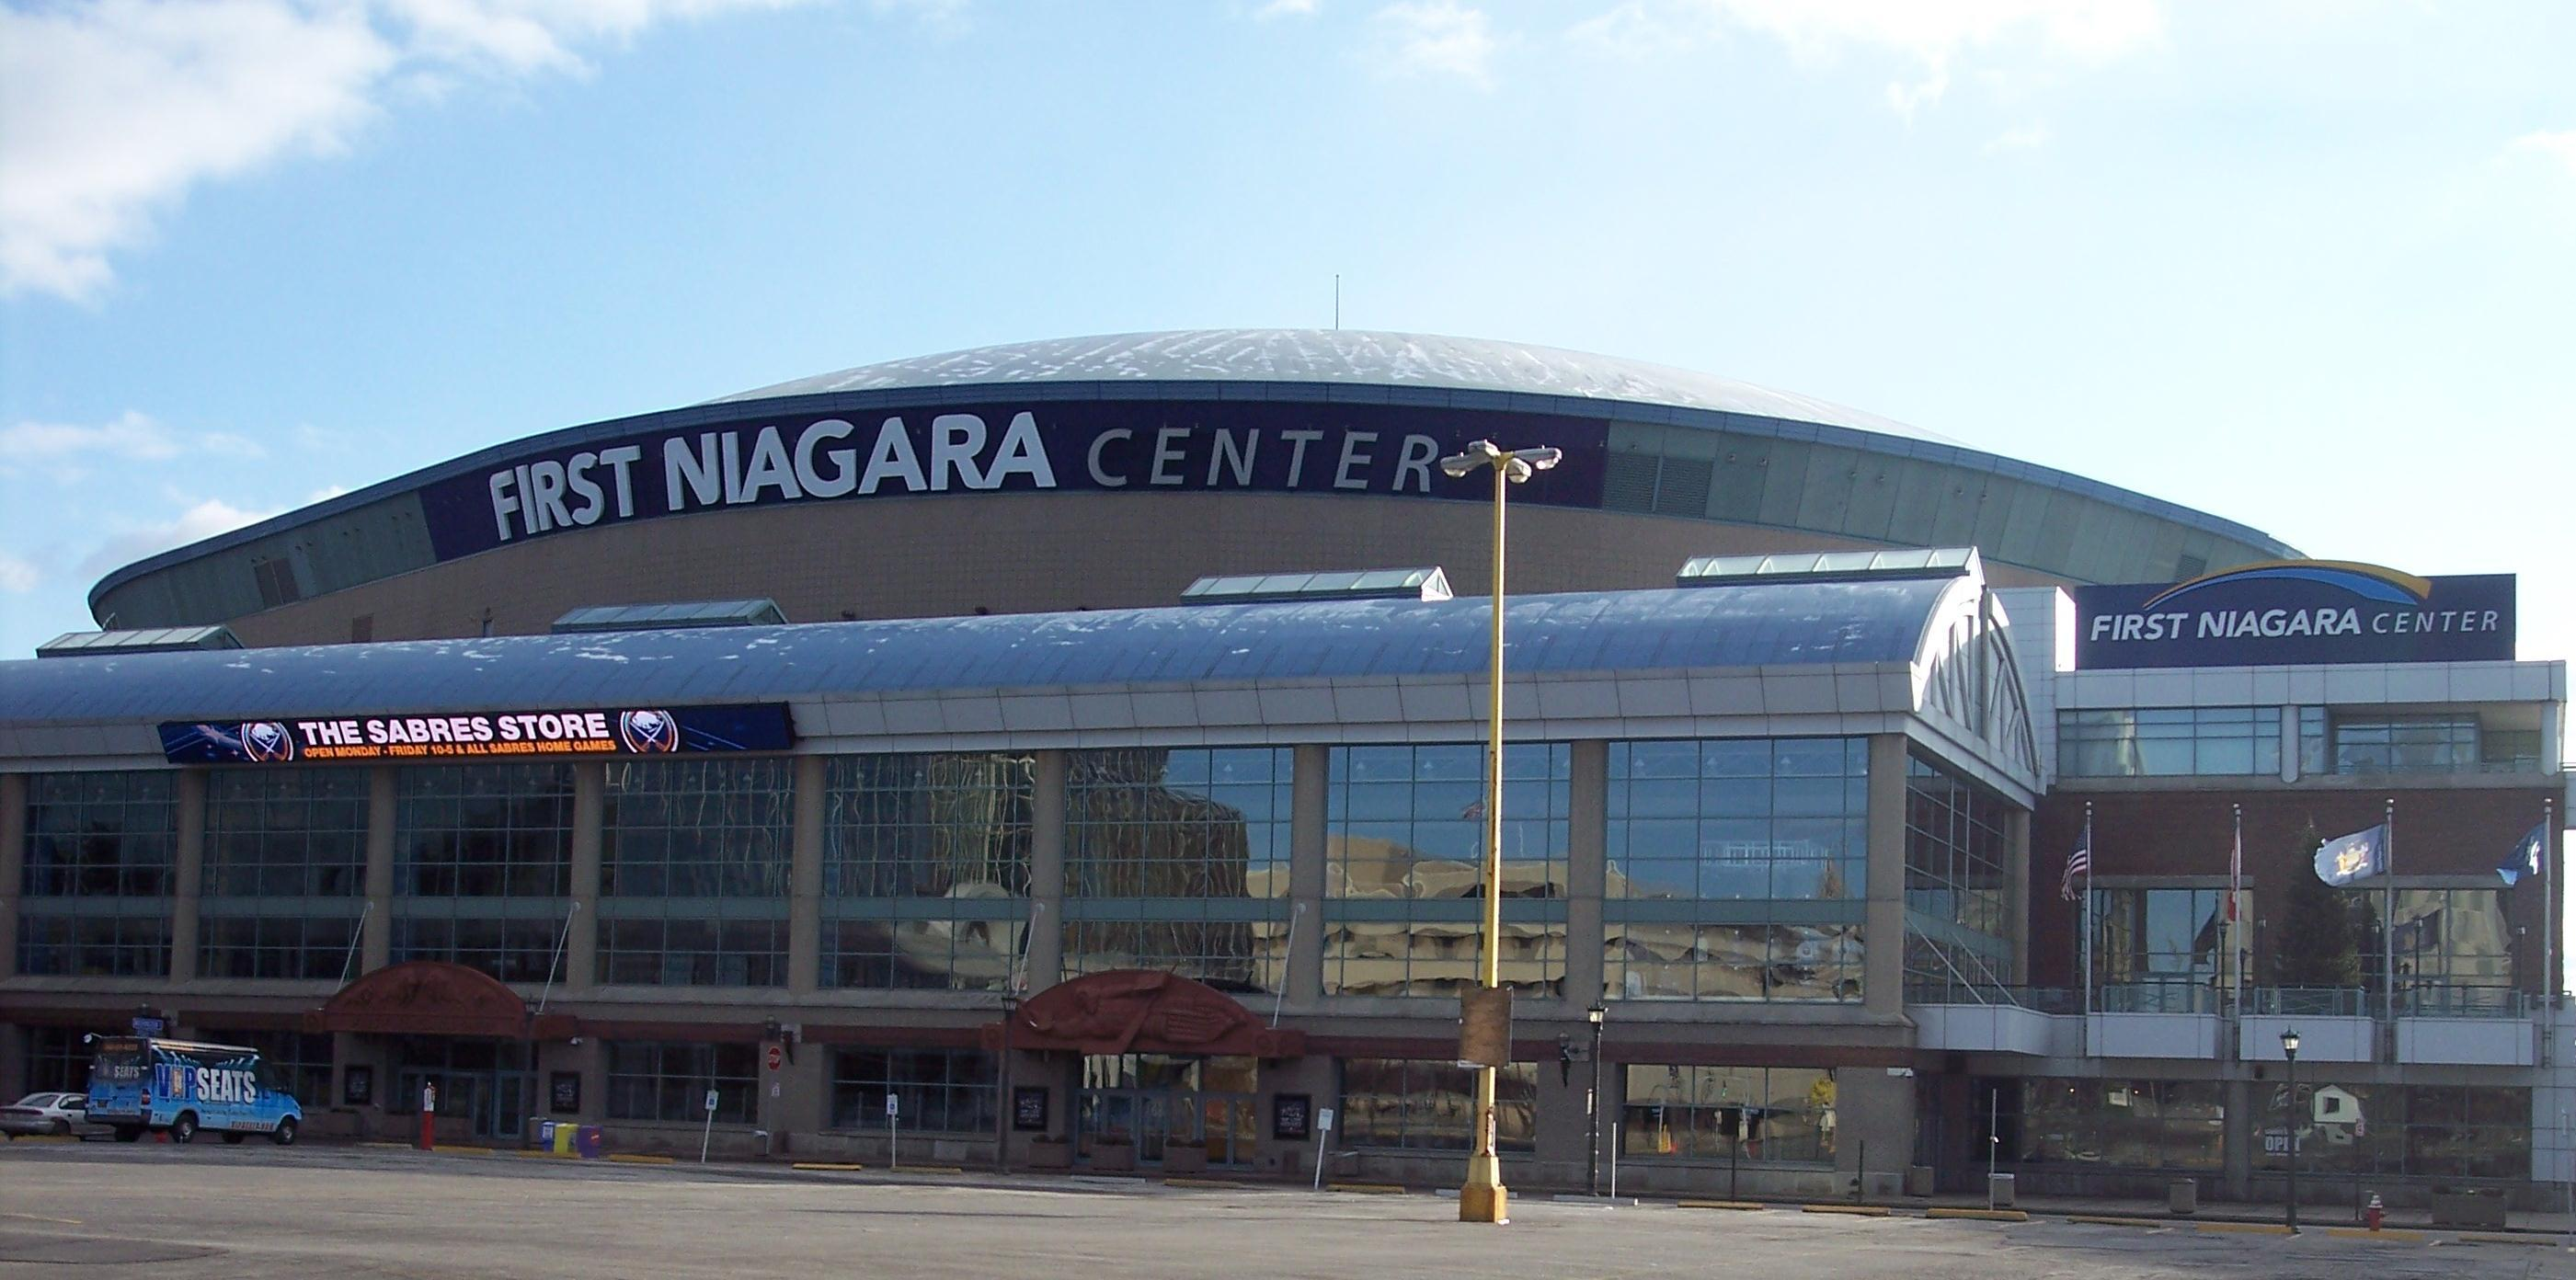 <a href='http://www.ticketsreview.com/venue/first-niagara-center-schedule/'>First Niagara Center tickets</a>